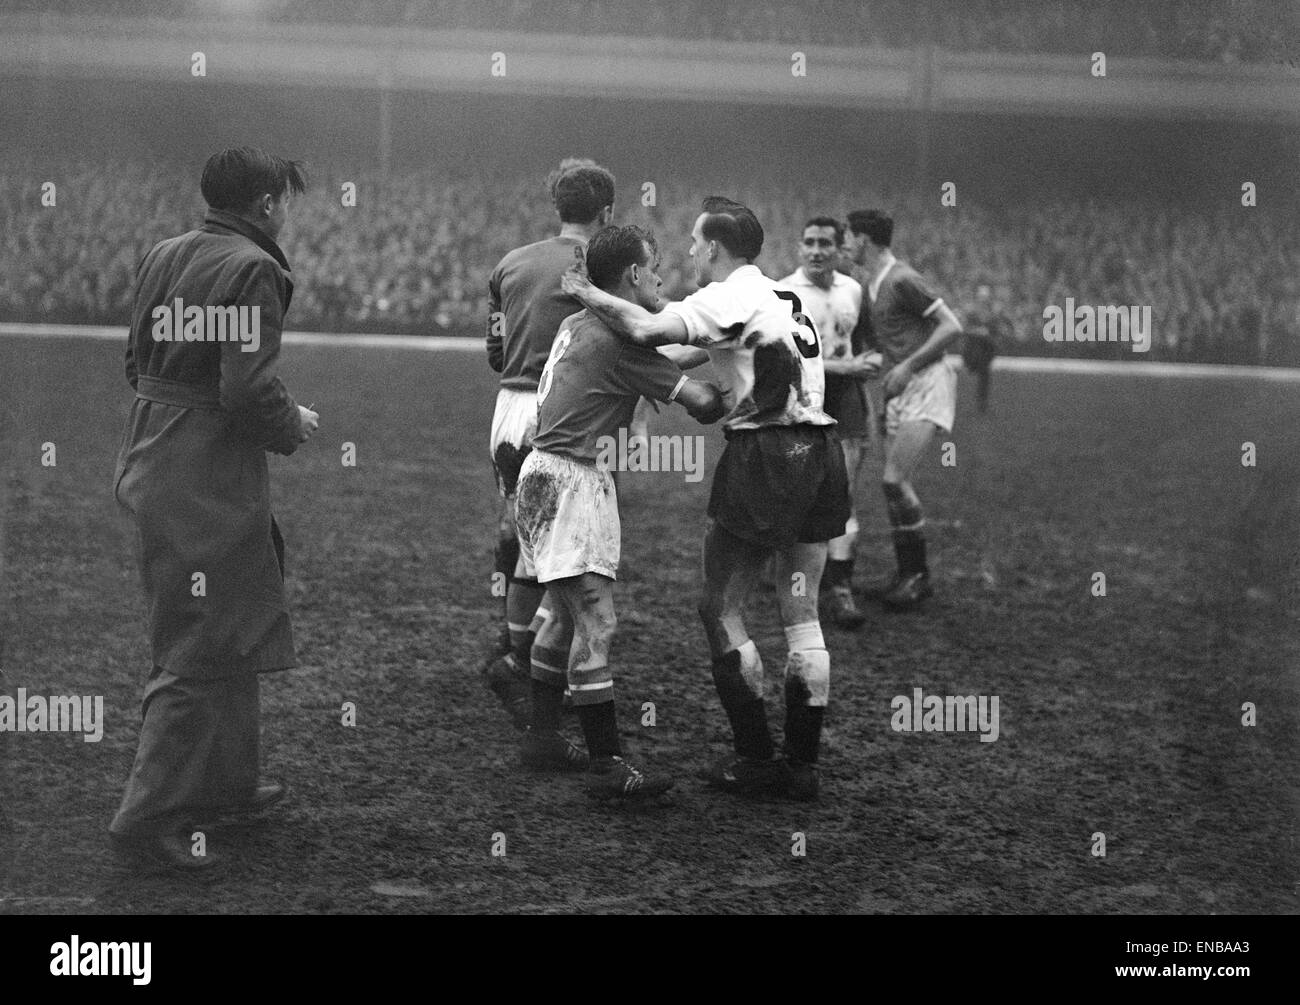 Manchester United v Fulham in the FA Cup Semi Final March 1958 Palyers shake hands after the match - Stock Image